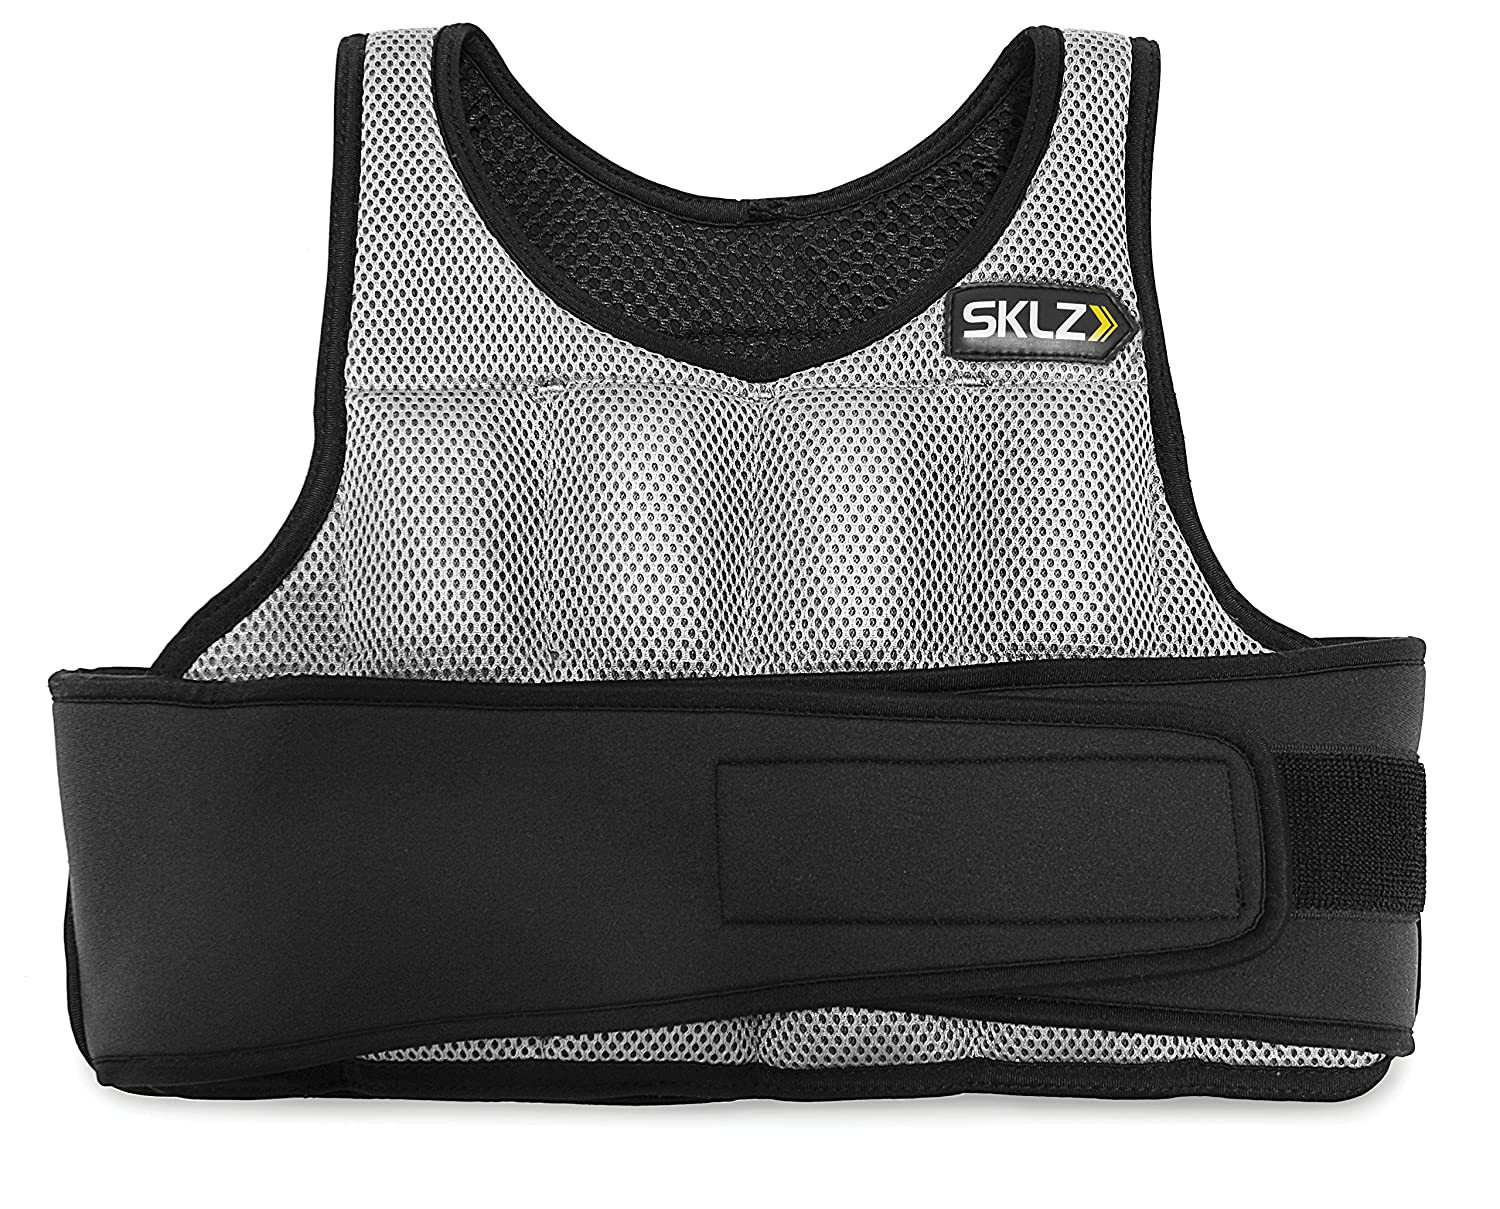 Sklz Weighted